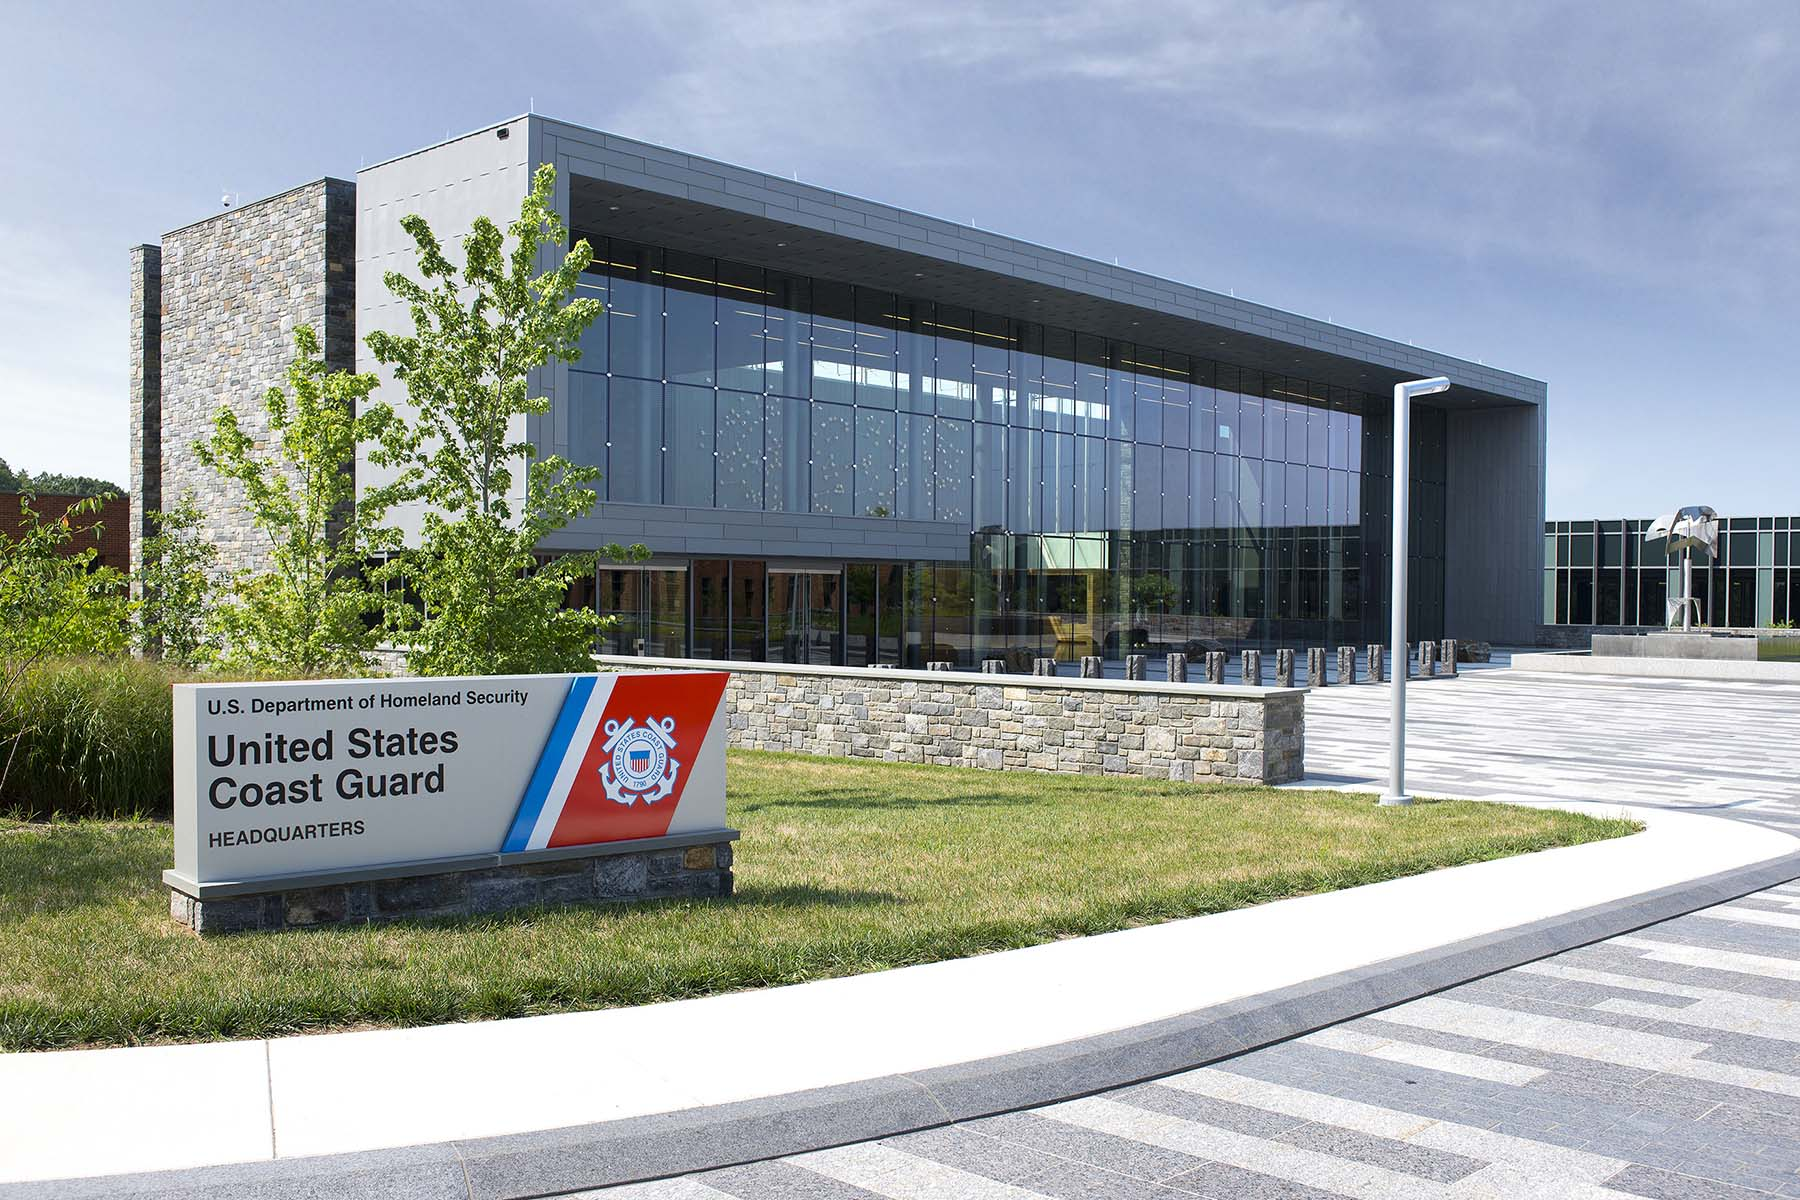 United States Coast Guard Sign and building